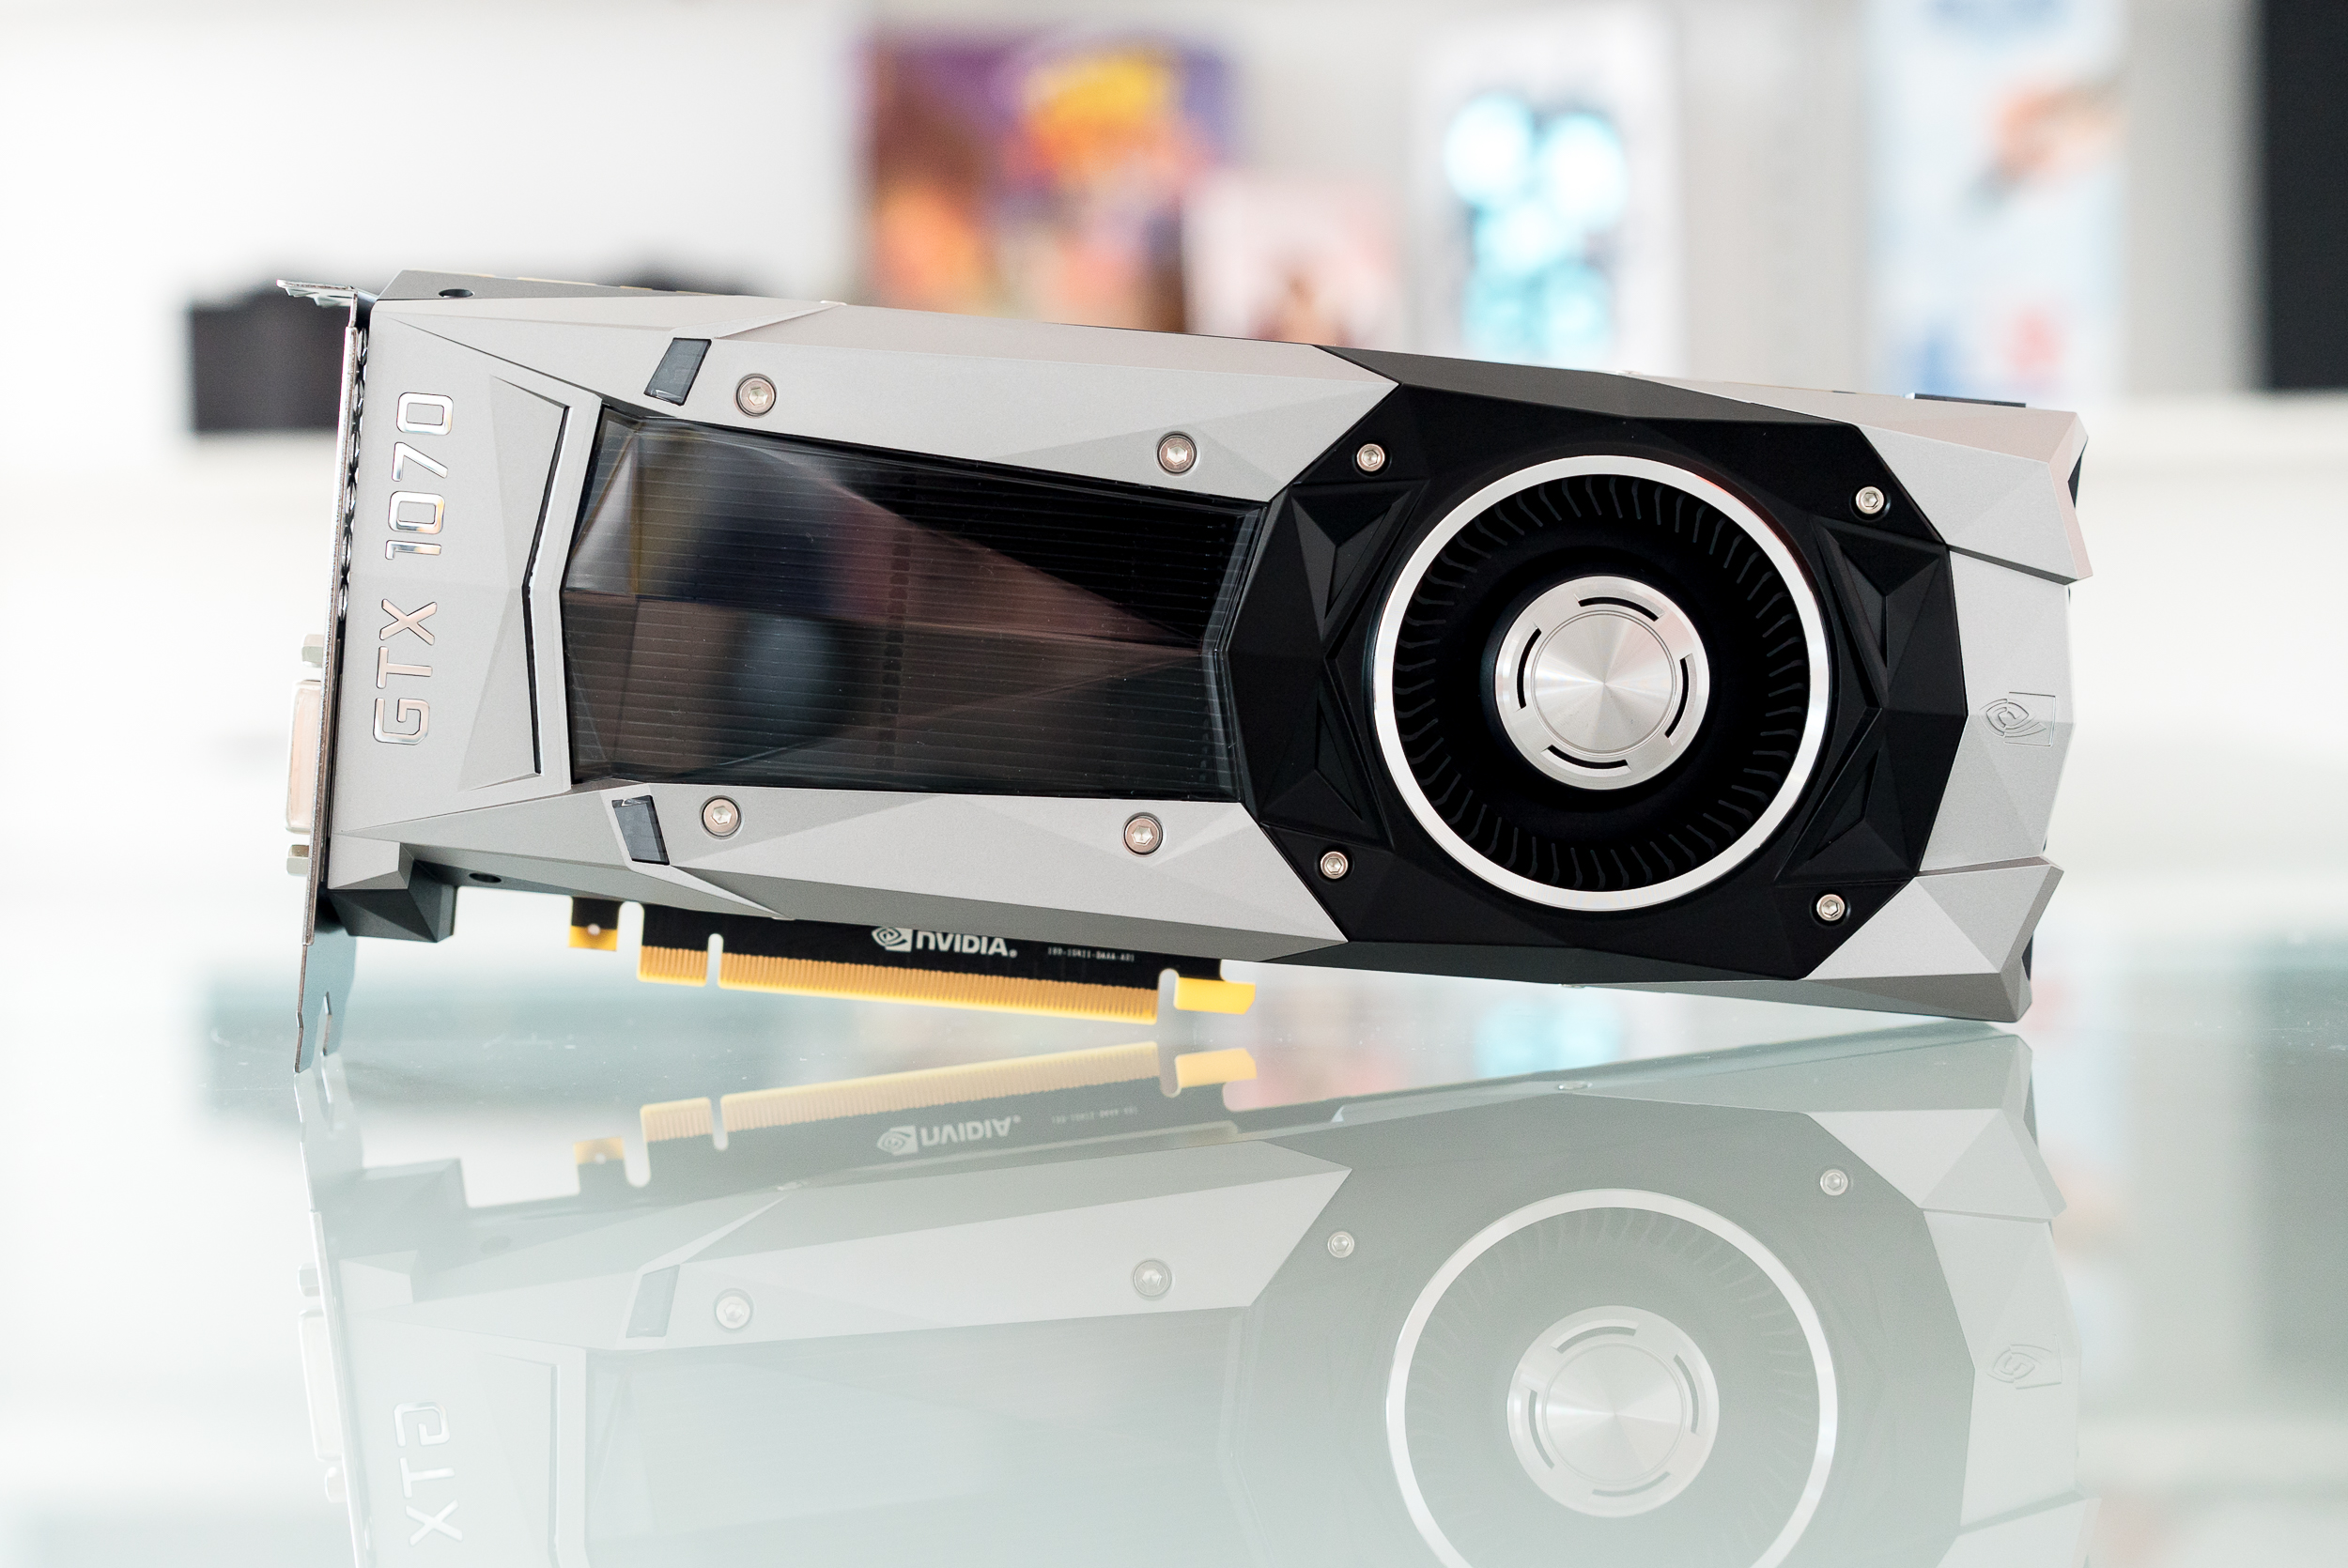 Nvidia GTX 1070 review: Faster than the Titan, at a more